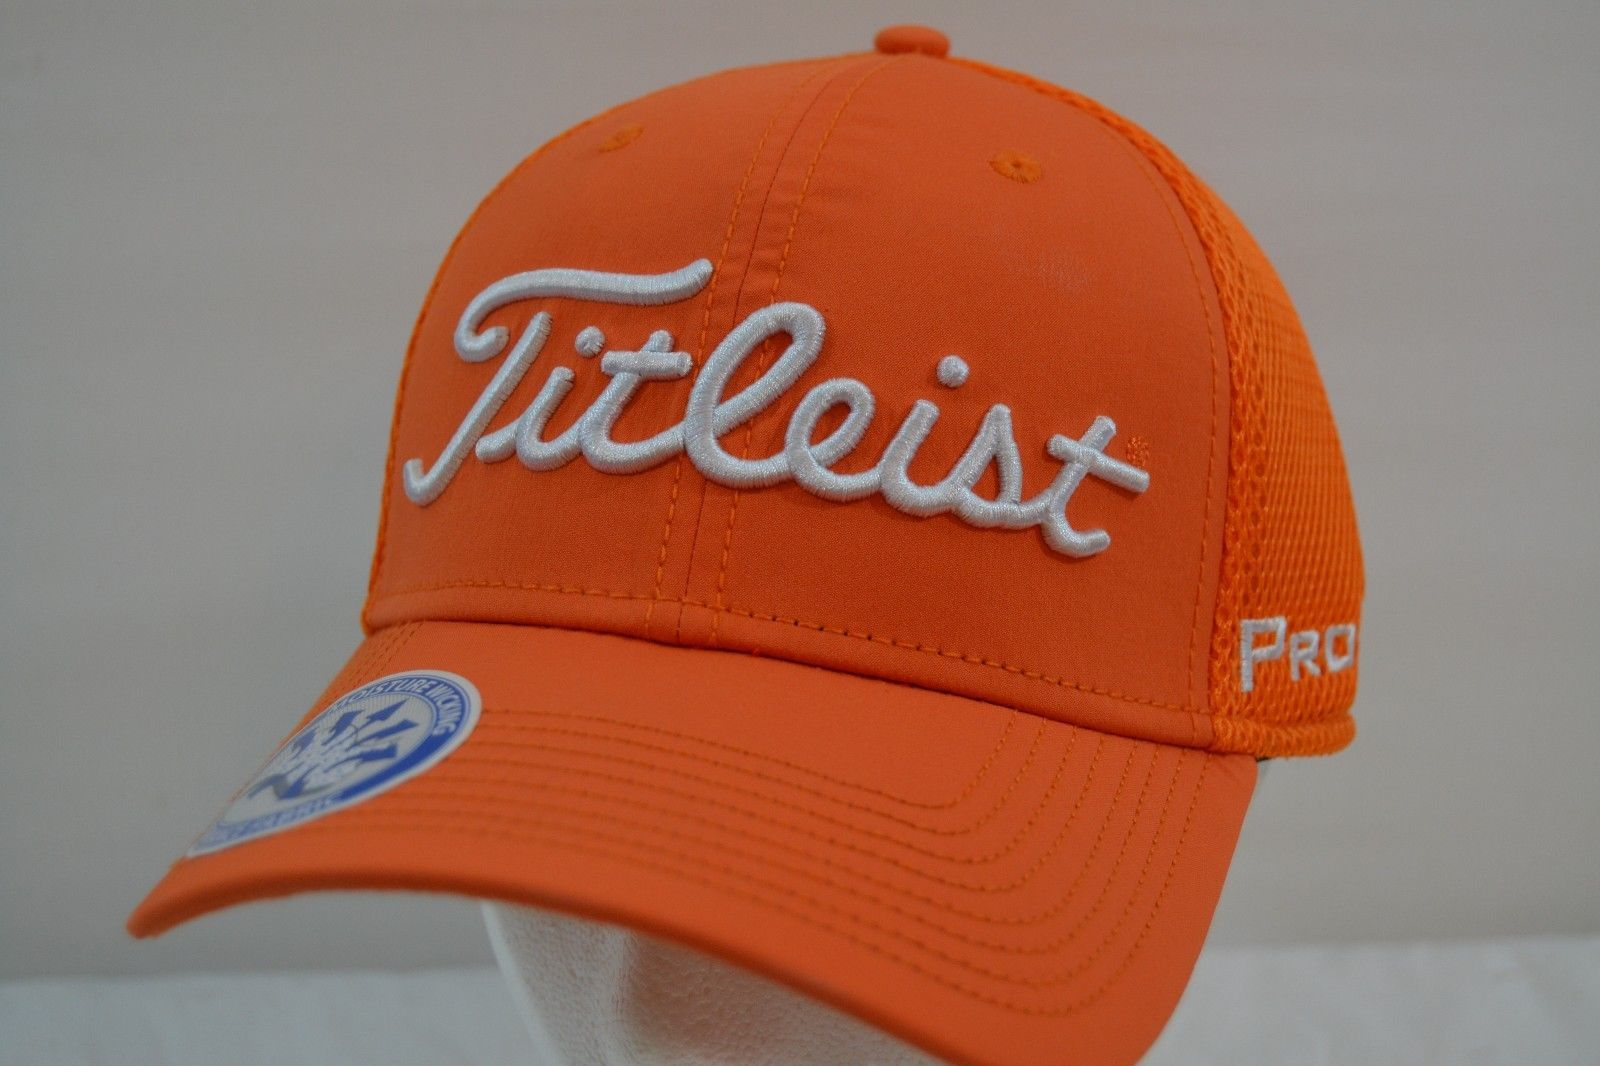 Titleist Golf Sport Mesh Orange/White Baseball Cap NWT Flex Fit M/L